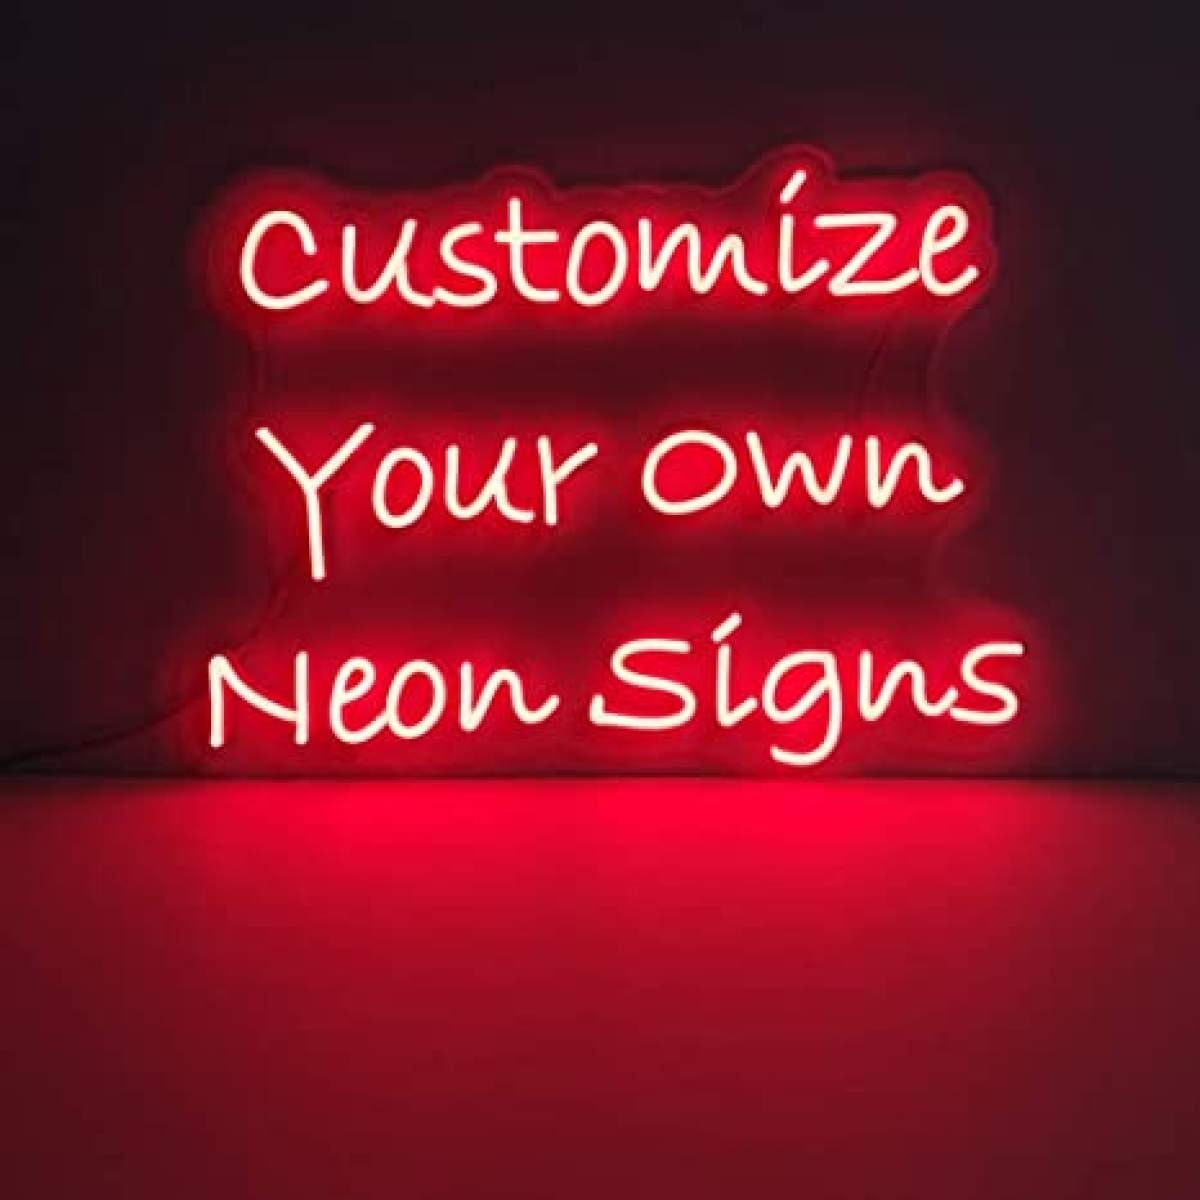 Rebow Nudes Sexy Lady Girl Led Neon Light Sign Party Wedding Club Bar Home Wall Decor Neon Lamp Gifts Panel Holiday Christmas enlarge